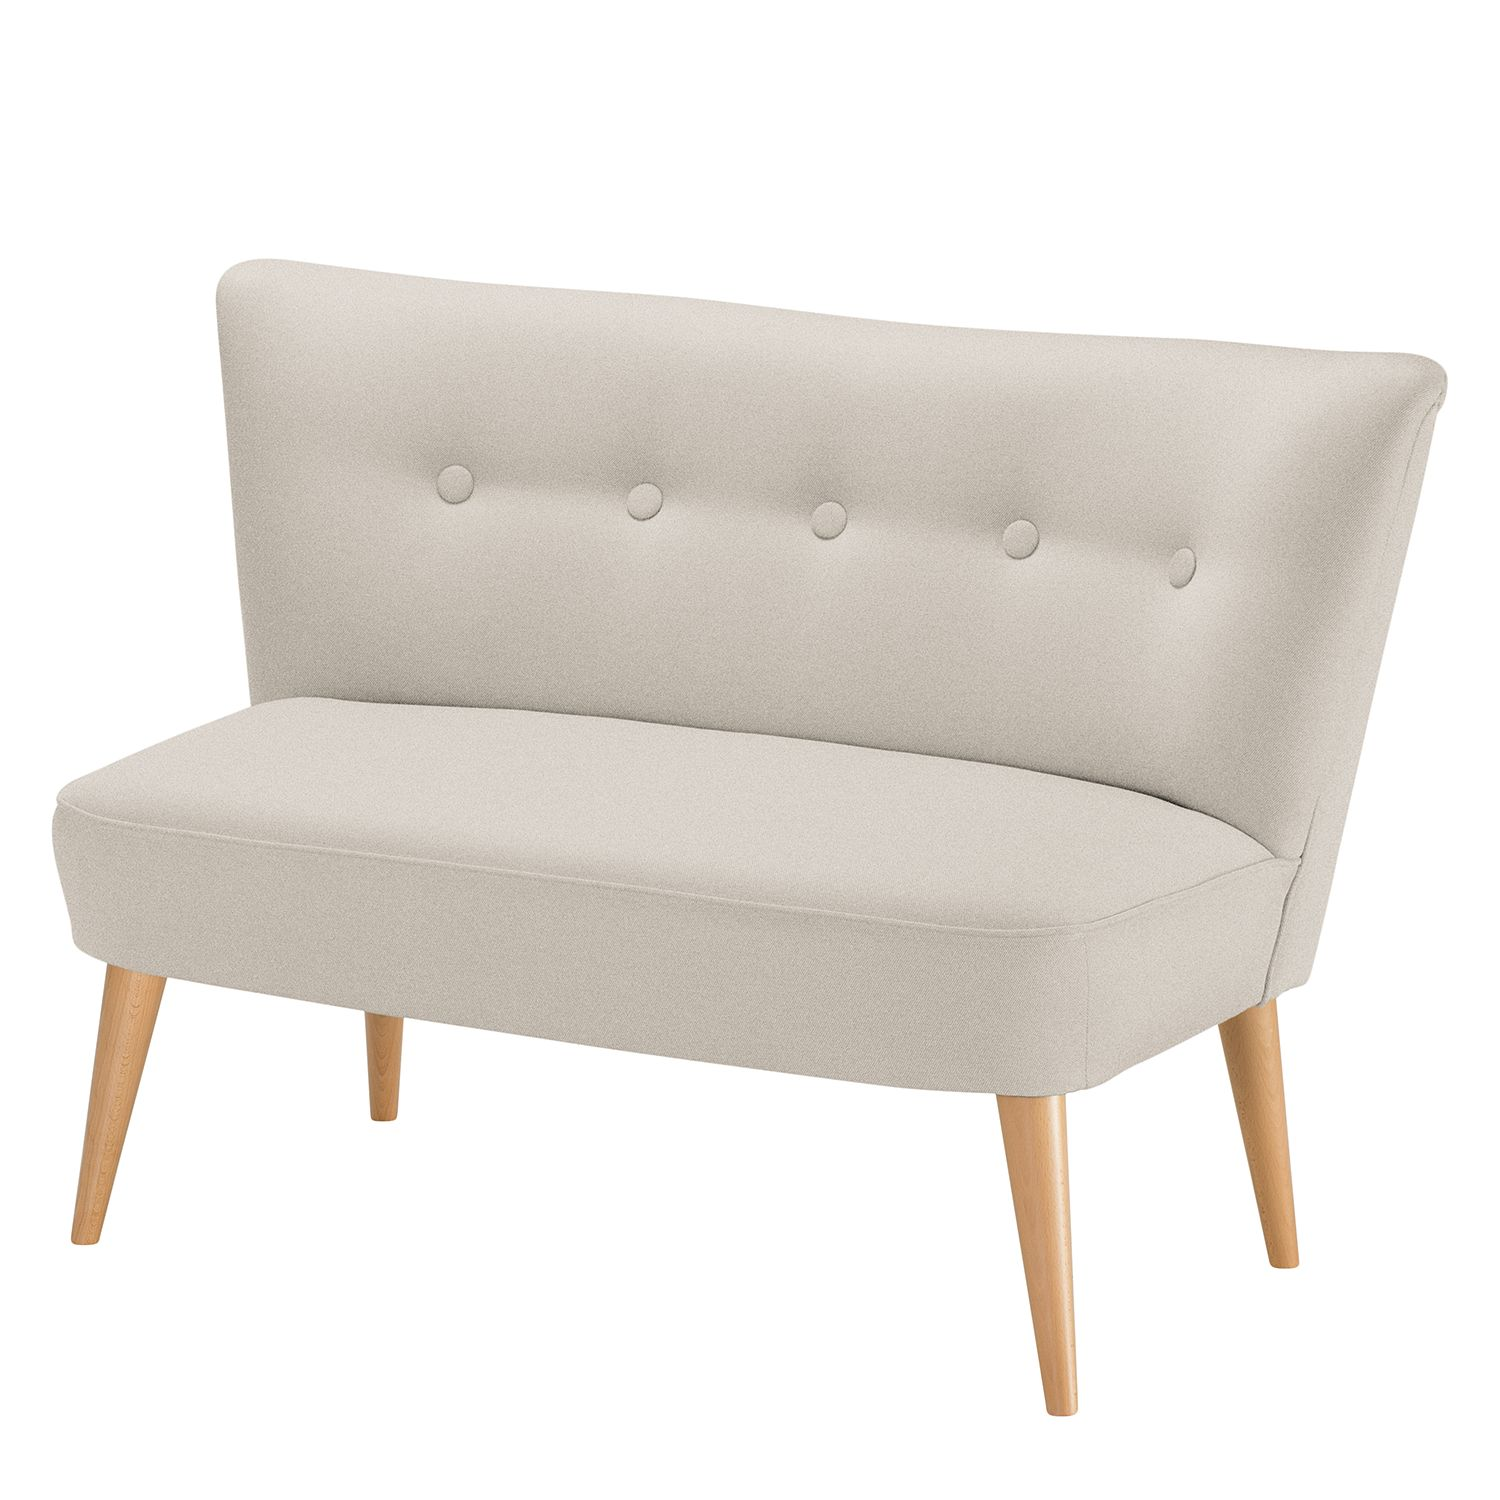 Sofa Bumberry (2-Sitzer) Webstoff